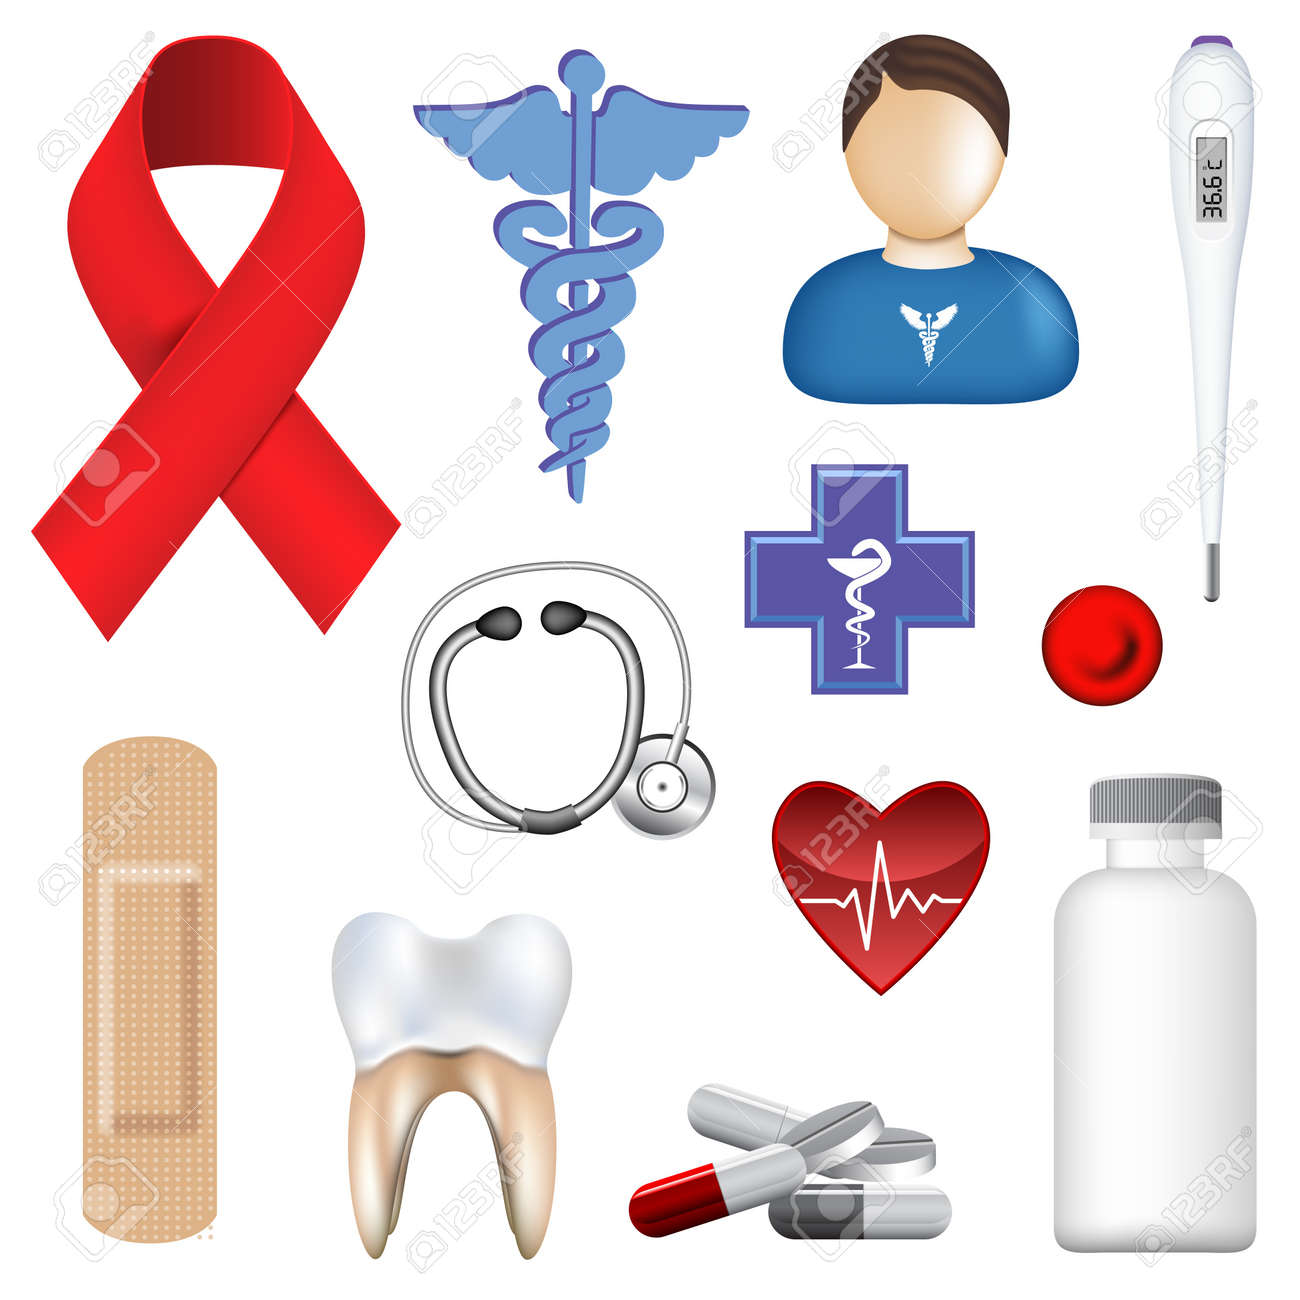 Vector Medical Object Collection Stock Vector - 10515084